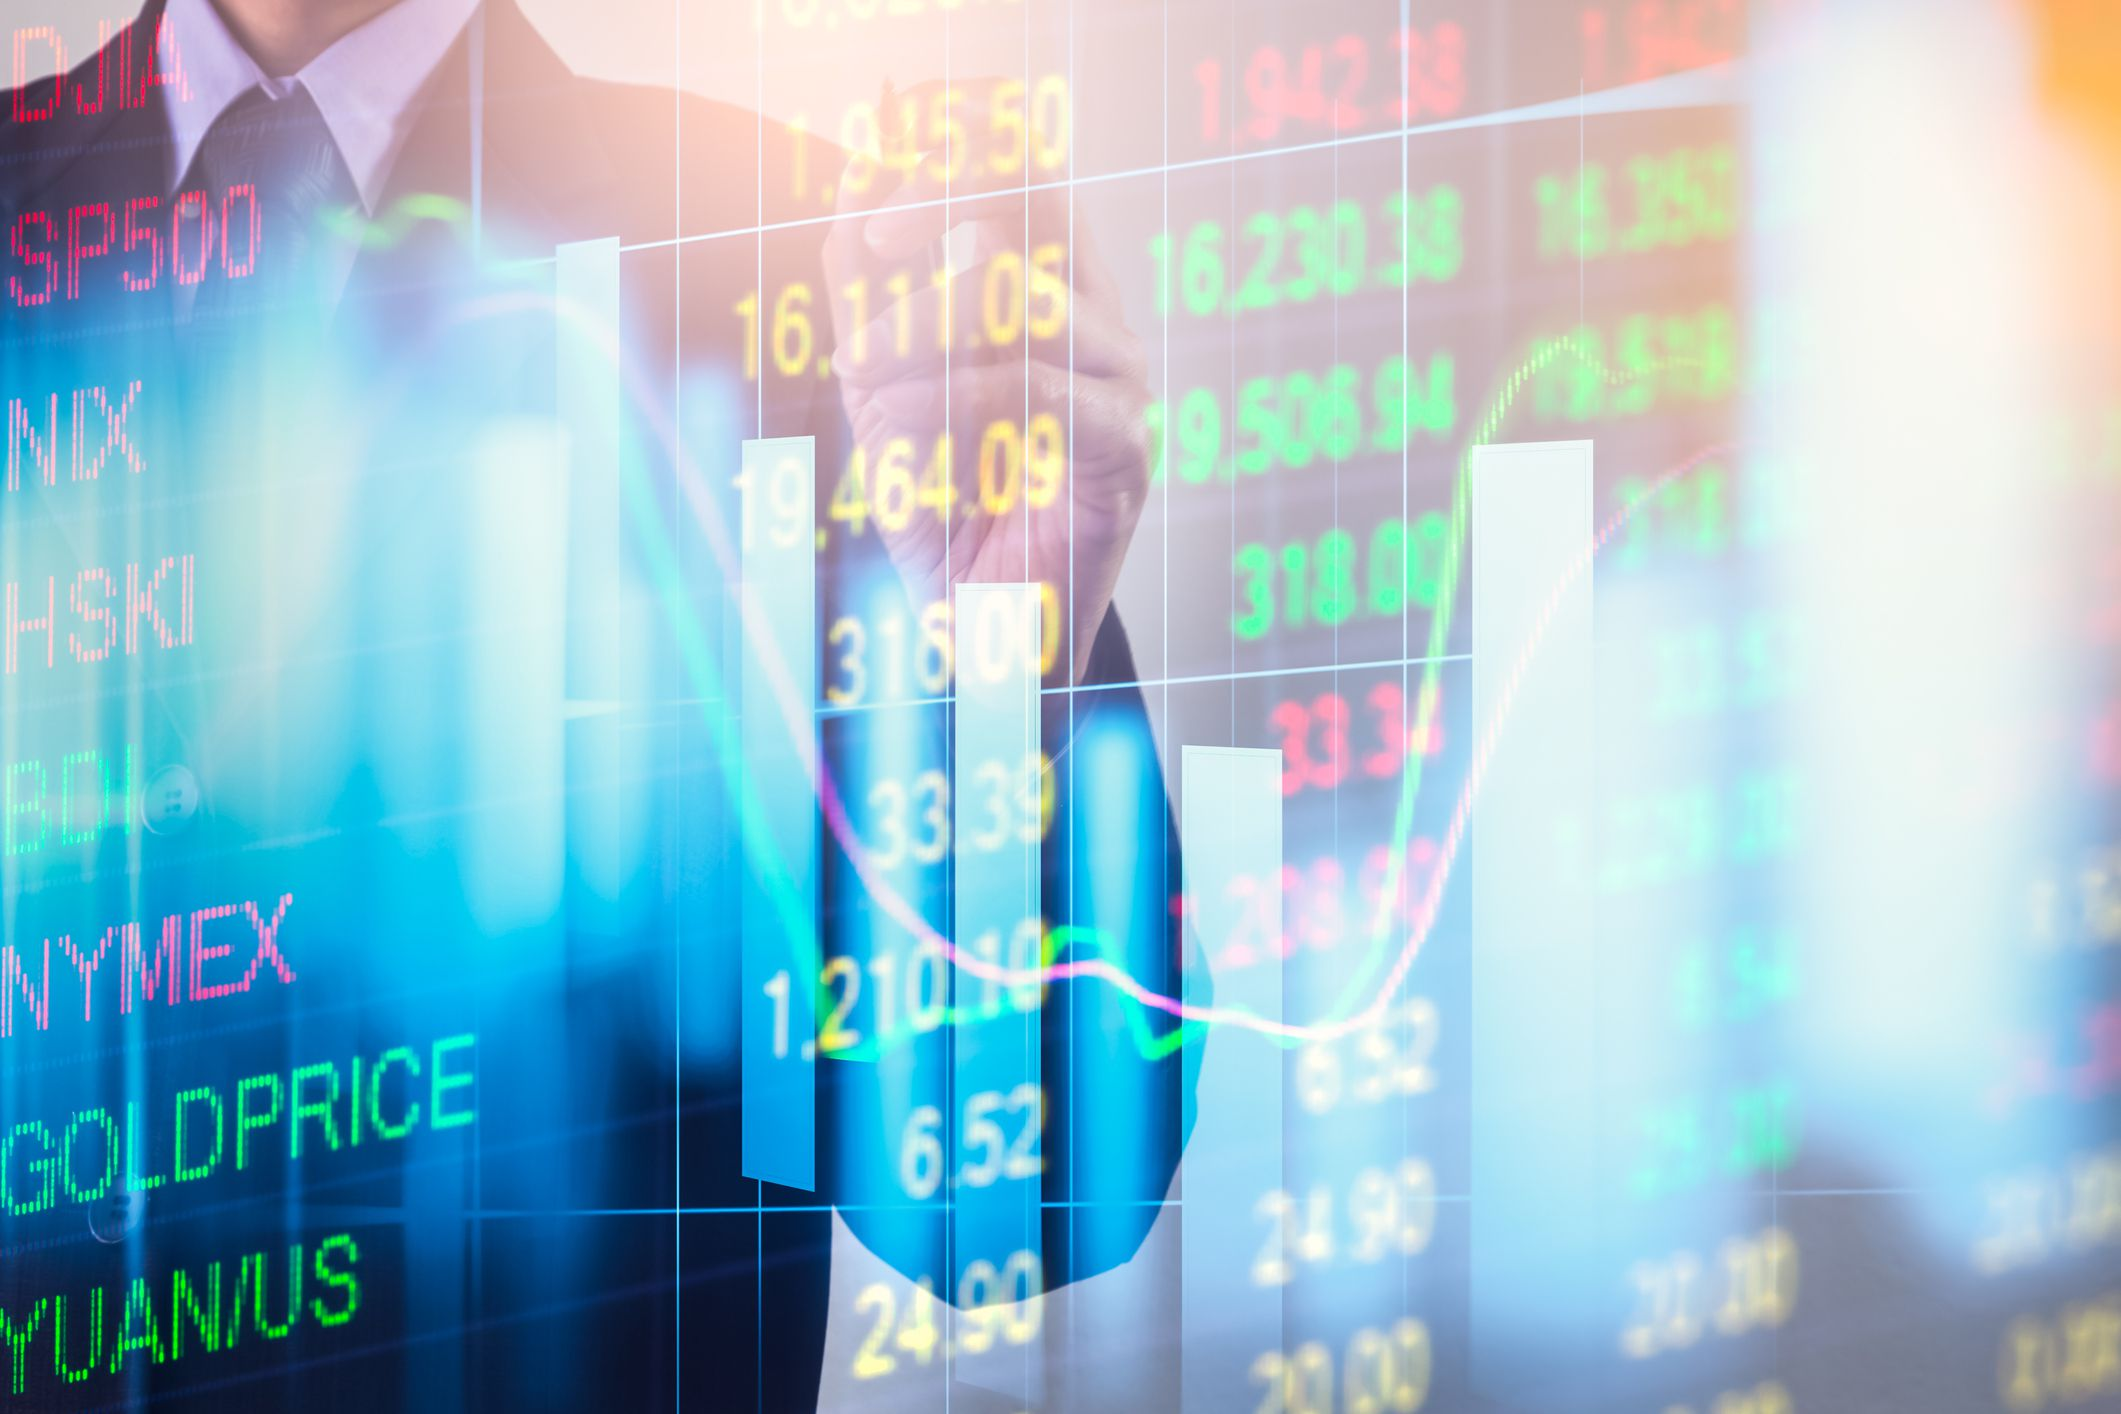 Discounts brokers – The most preferred brokers in the stock market